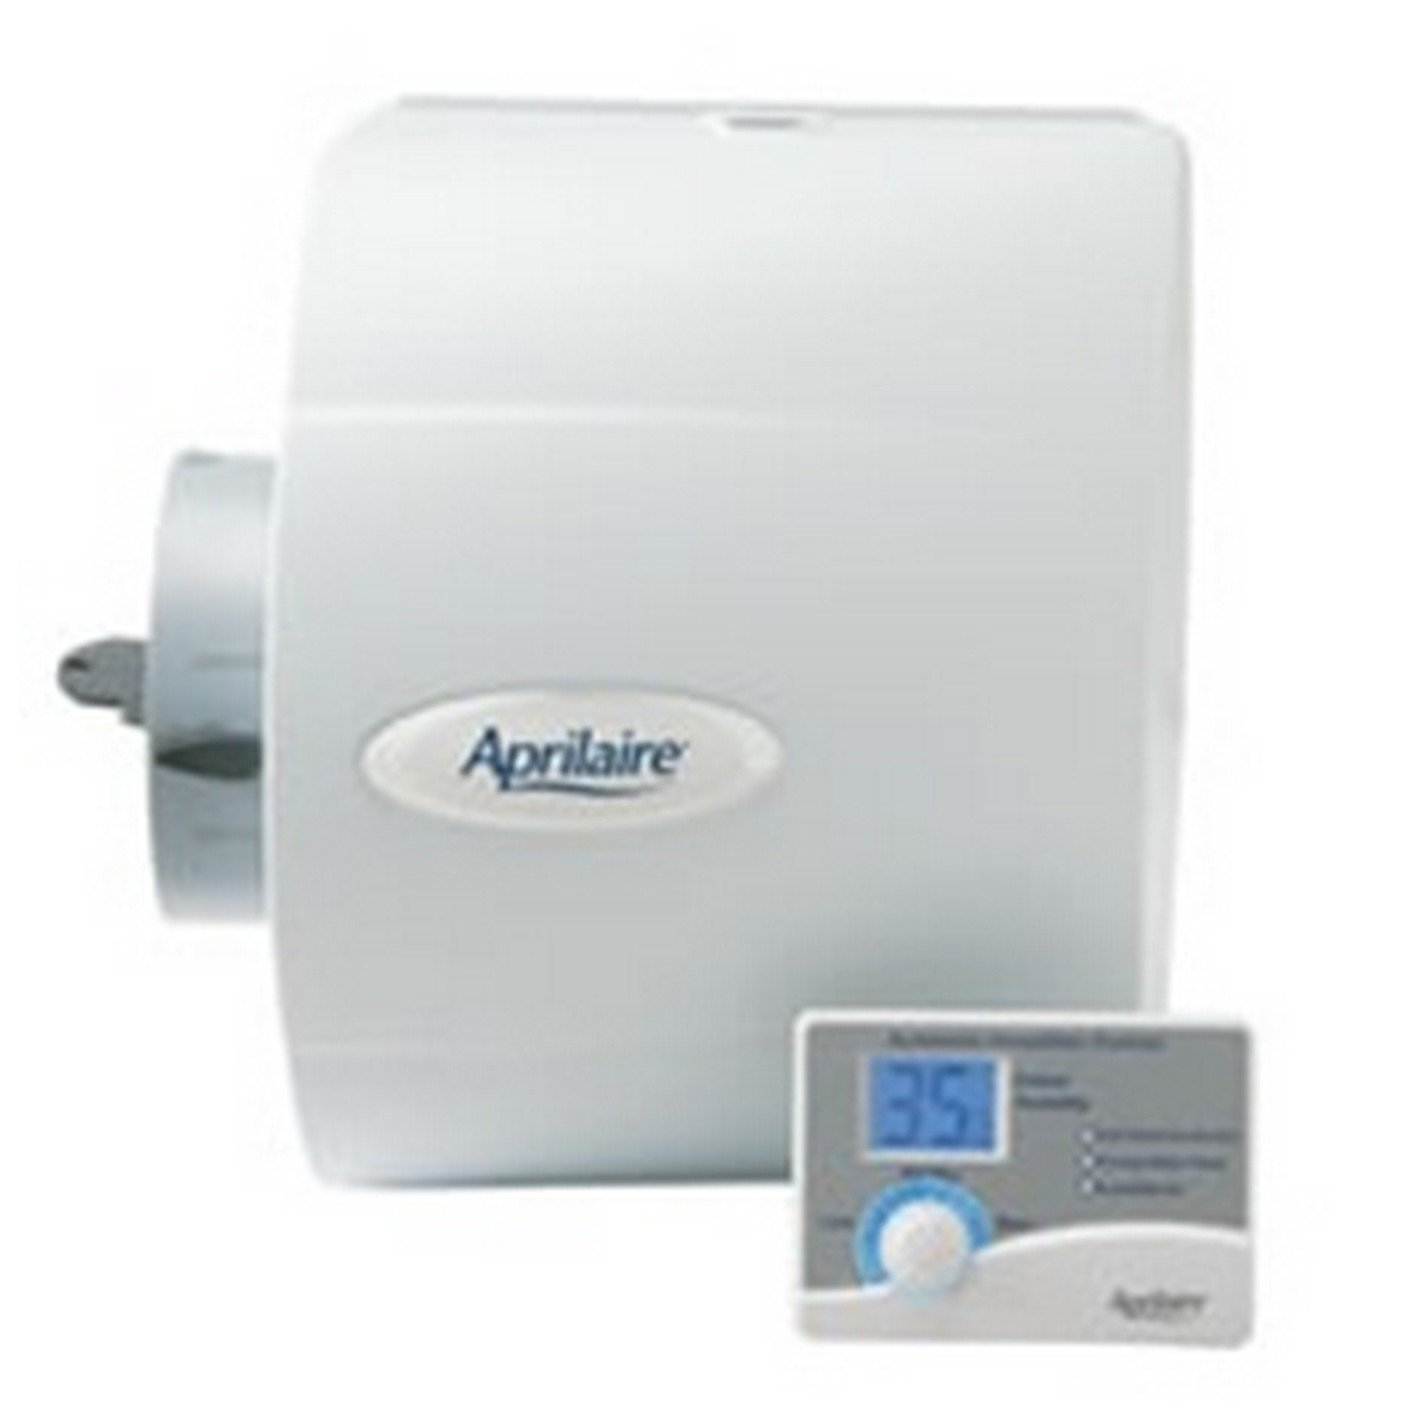 aprilaire 600 review Aprilaire 600 Humidifier Whole House Bypass  #3B6390